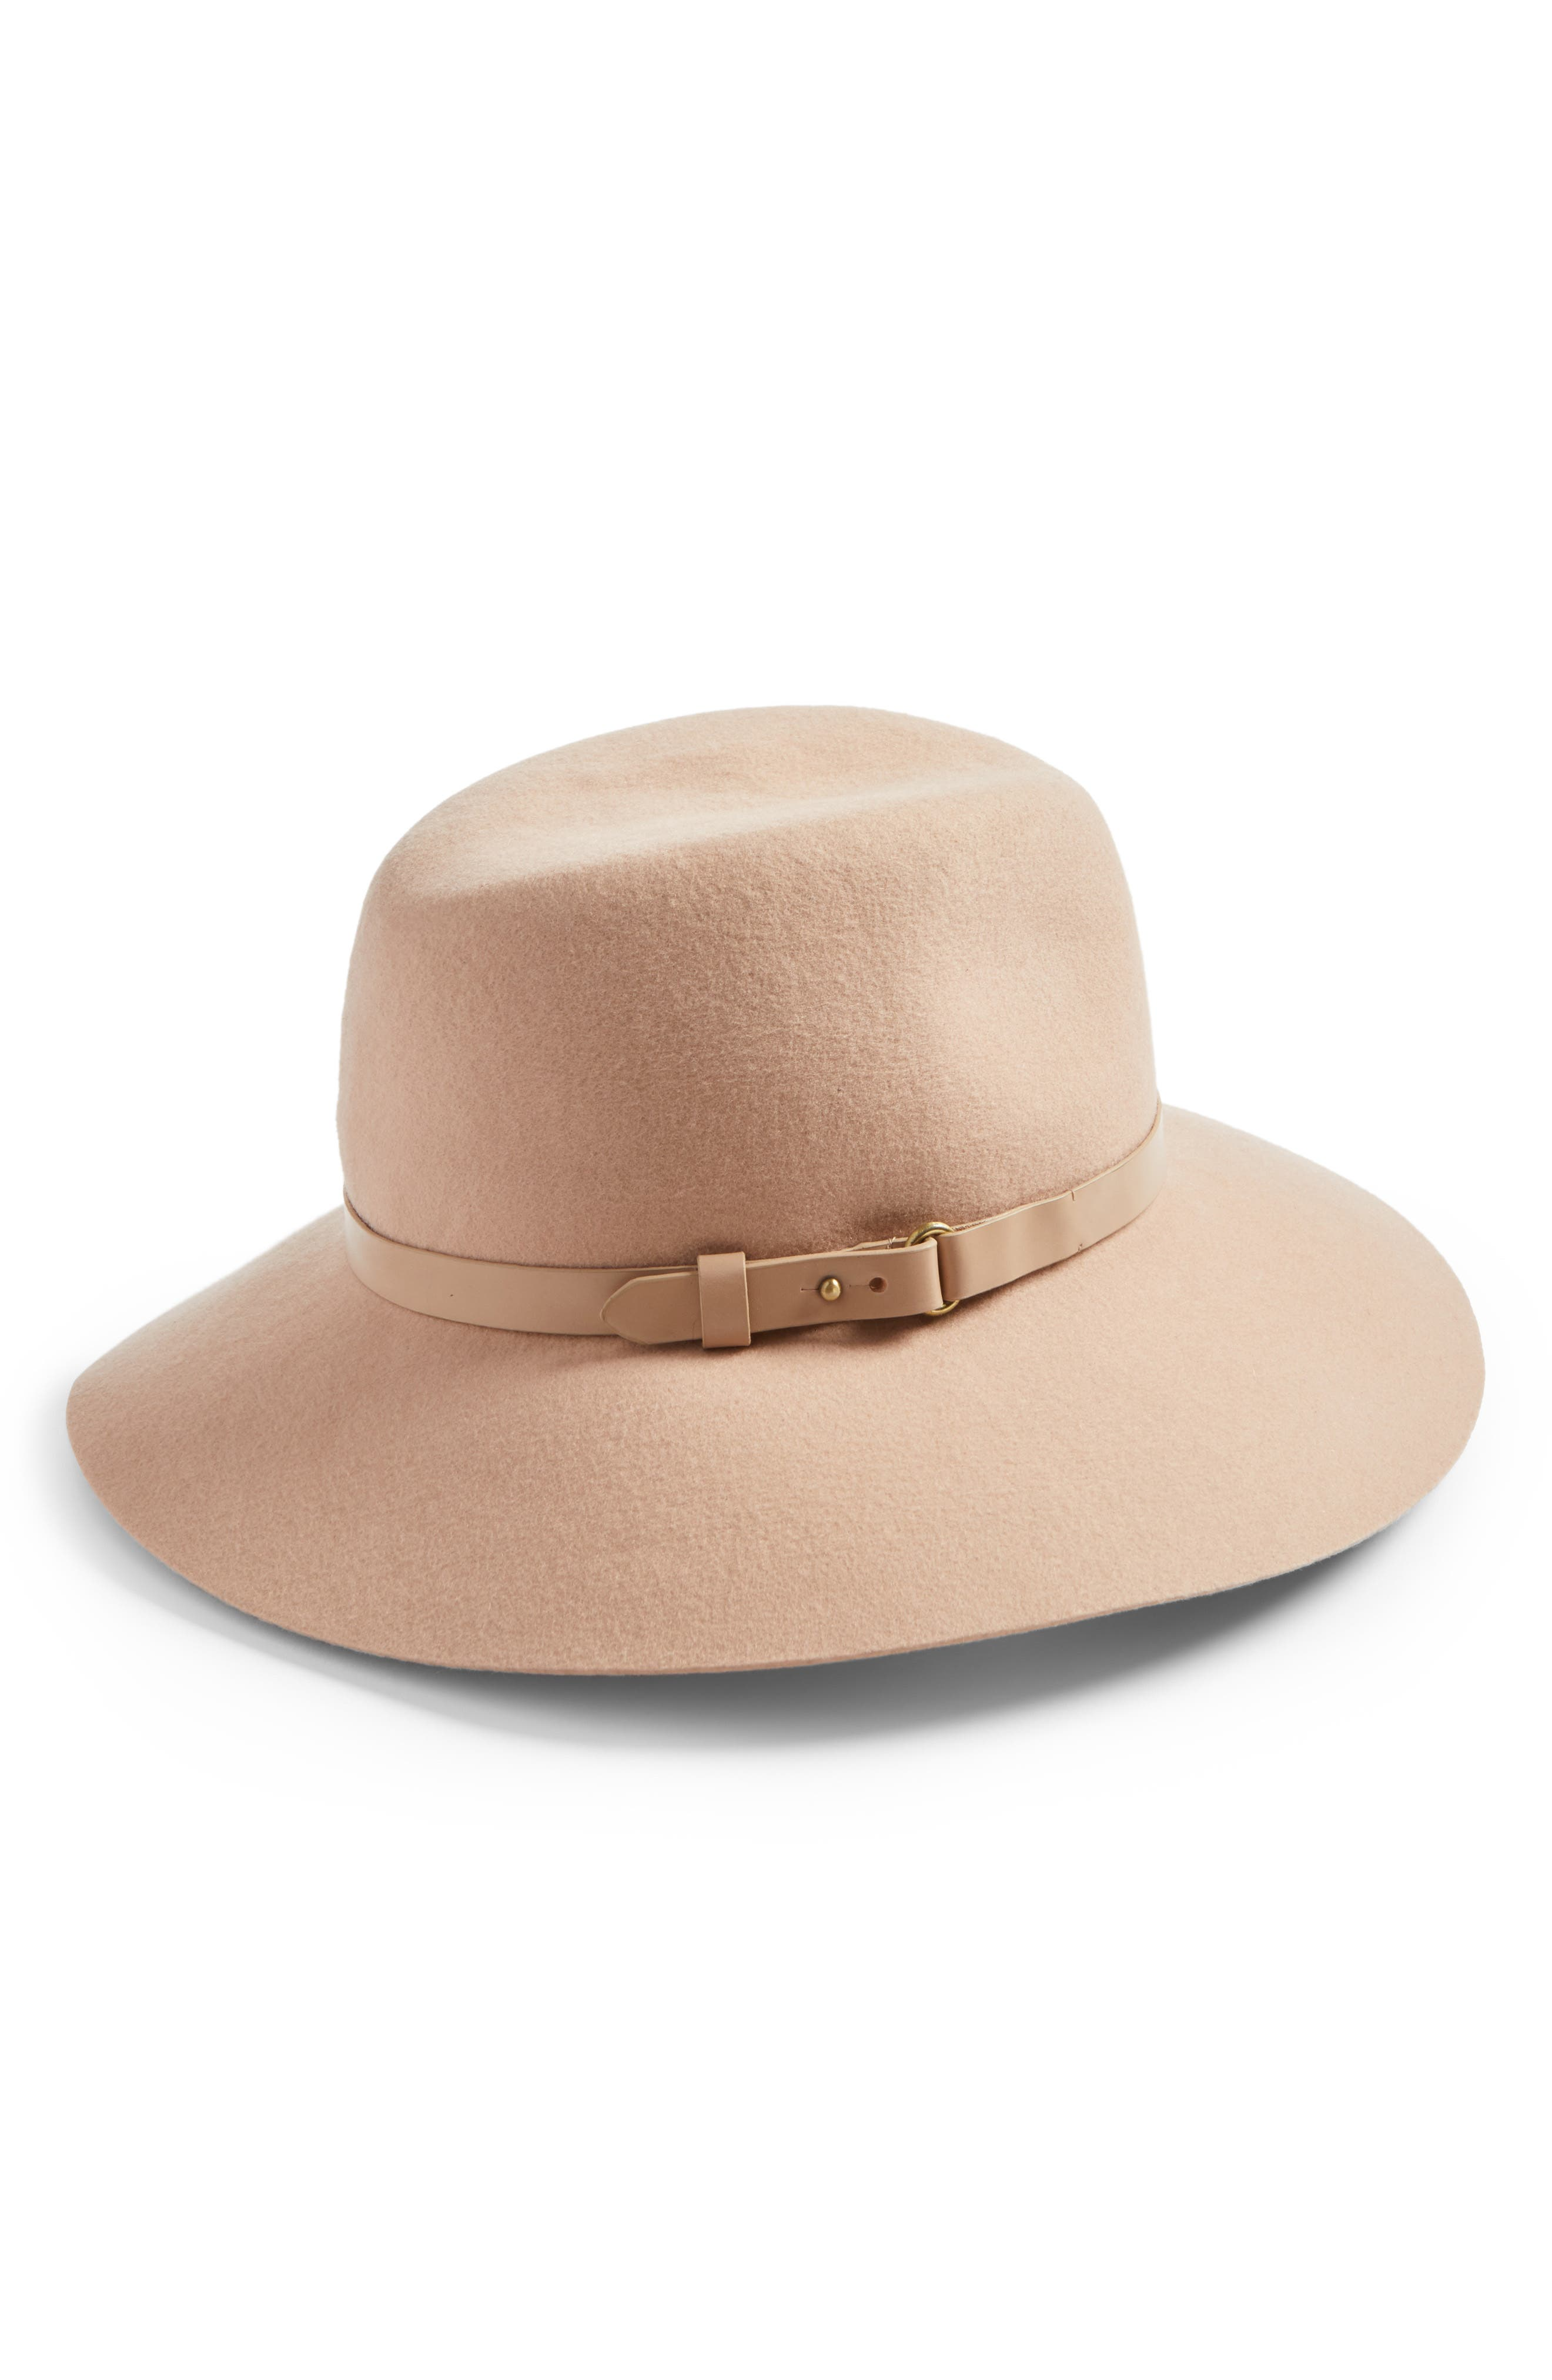 Eric Javits 'Fanny' Water Repellent Wool Fedora